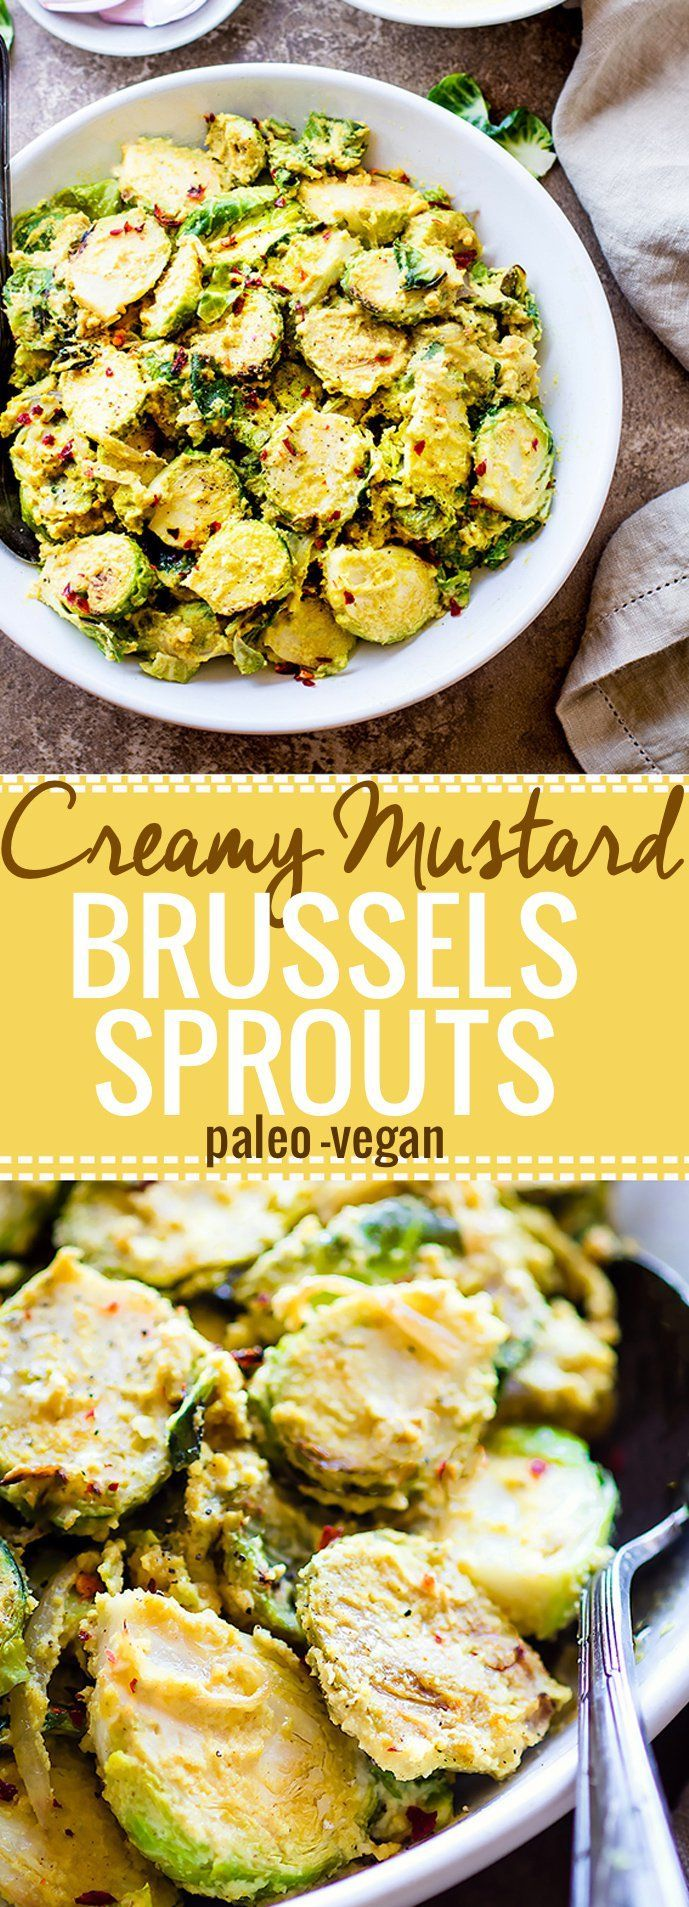 Pan Fried Creamy Mustard Brussels Sprouts Salad! A paleo Brussel Sprouts superfood salad dish tossed in a vegan creamy mustard sauce. Quick to make, packed with fiber, healthy fats, and nourishment! A healthy gluten free side dish to add to your table. /cottercrunch/